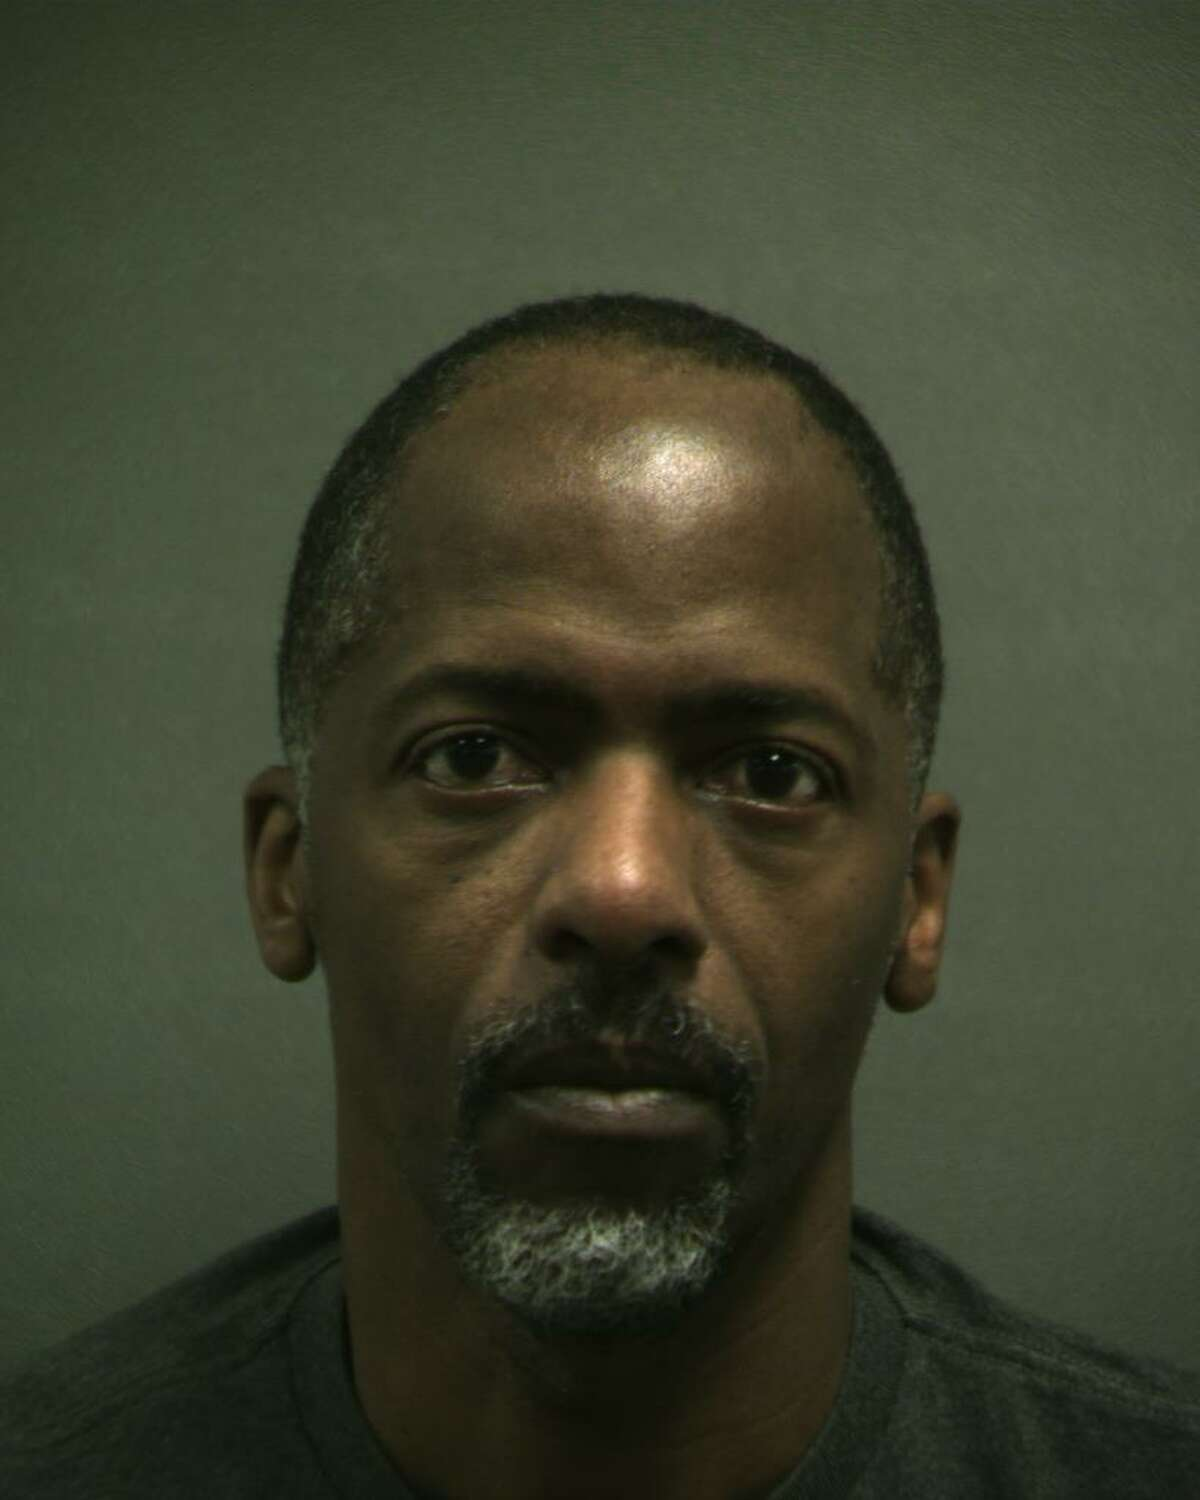 Jan. 24: Former San Antonio anchor arrested for prostitution Former KABB sports anchor, reporter Anthony Pittman was charged with prostitution in Amarillo. Pittman worked at KABB FOX-29 for more than 10 years as a reporter and a sports anchor.